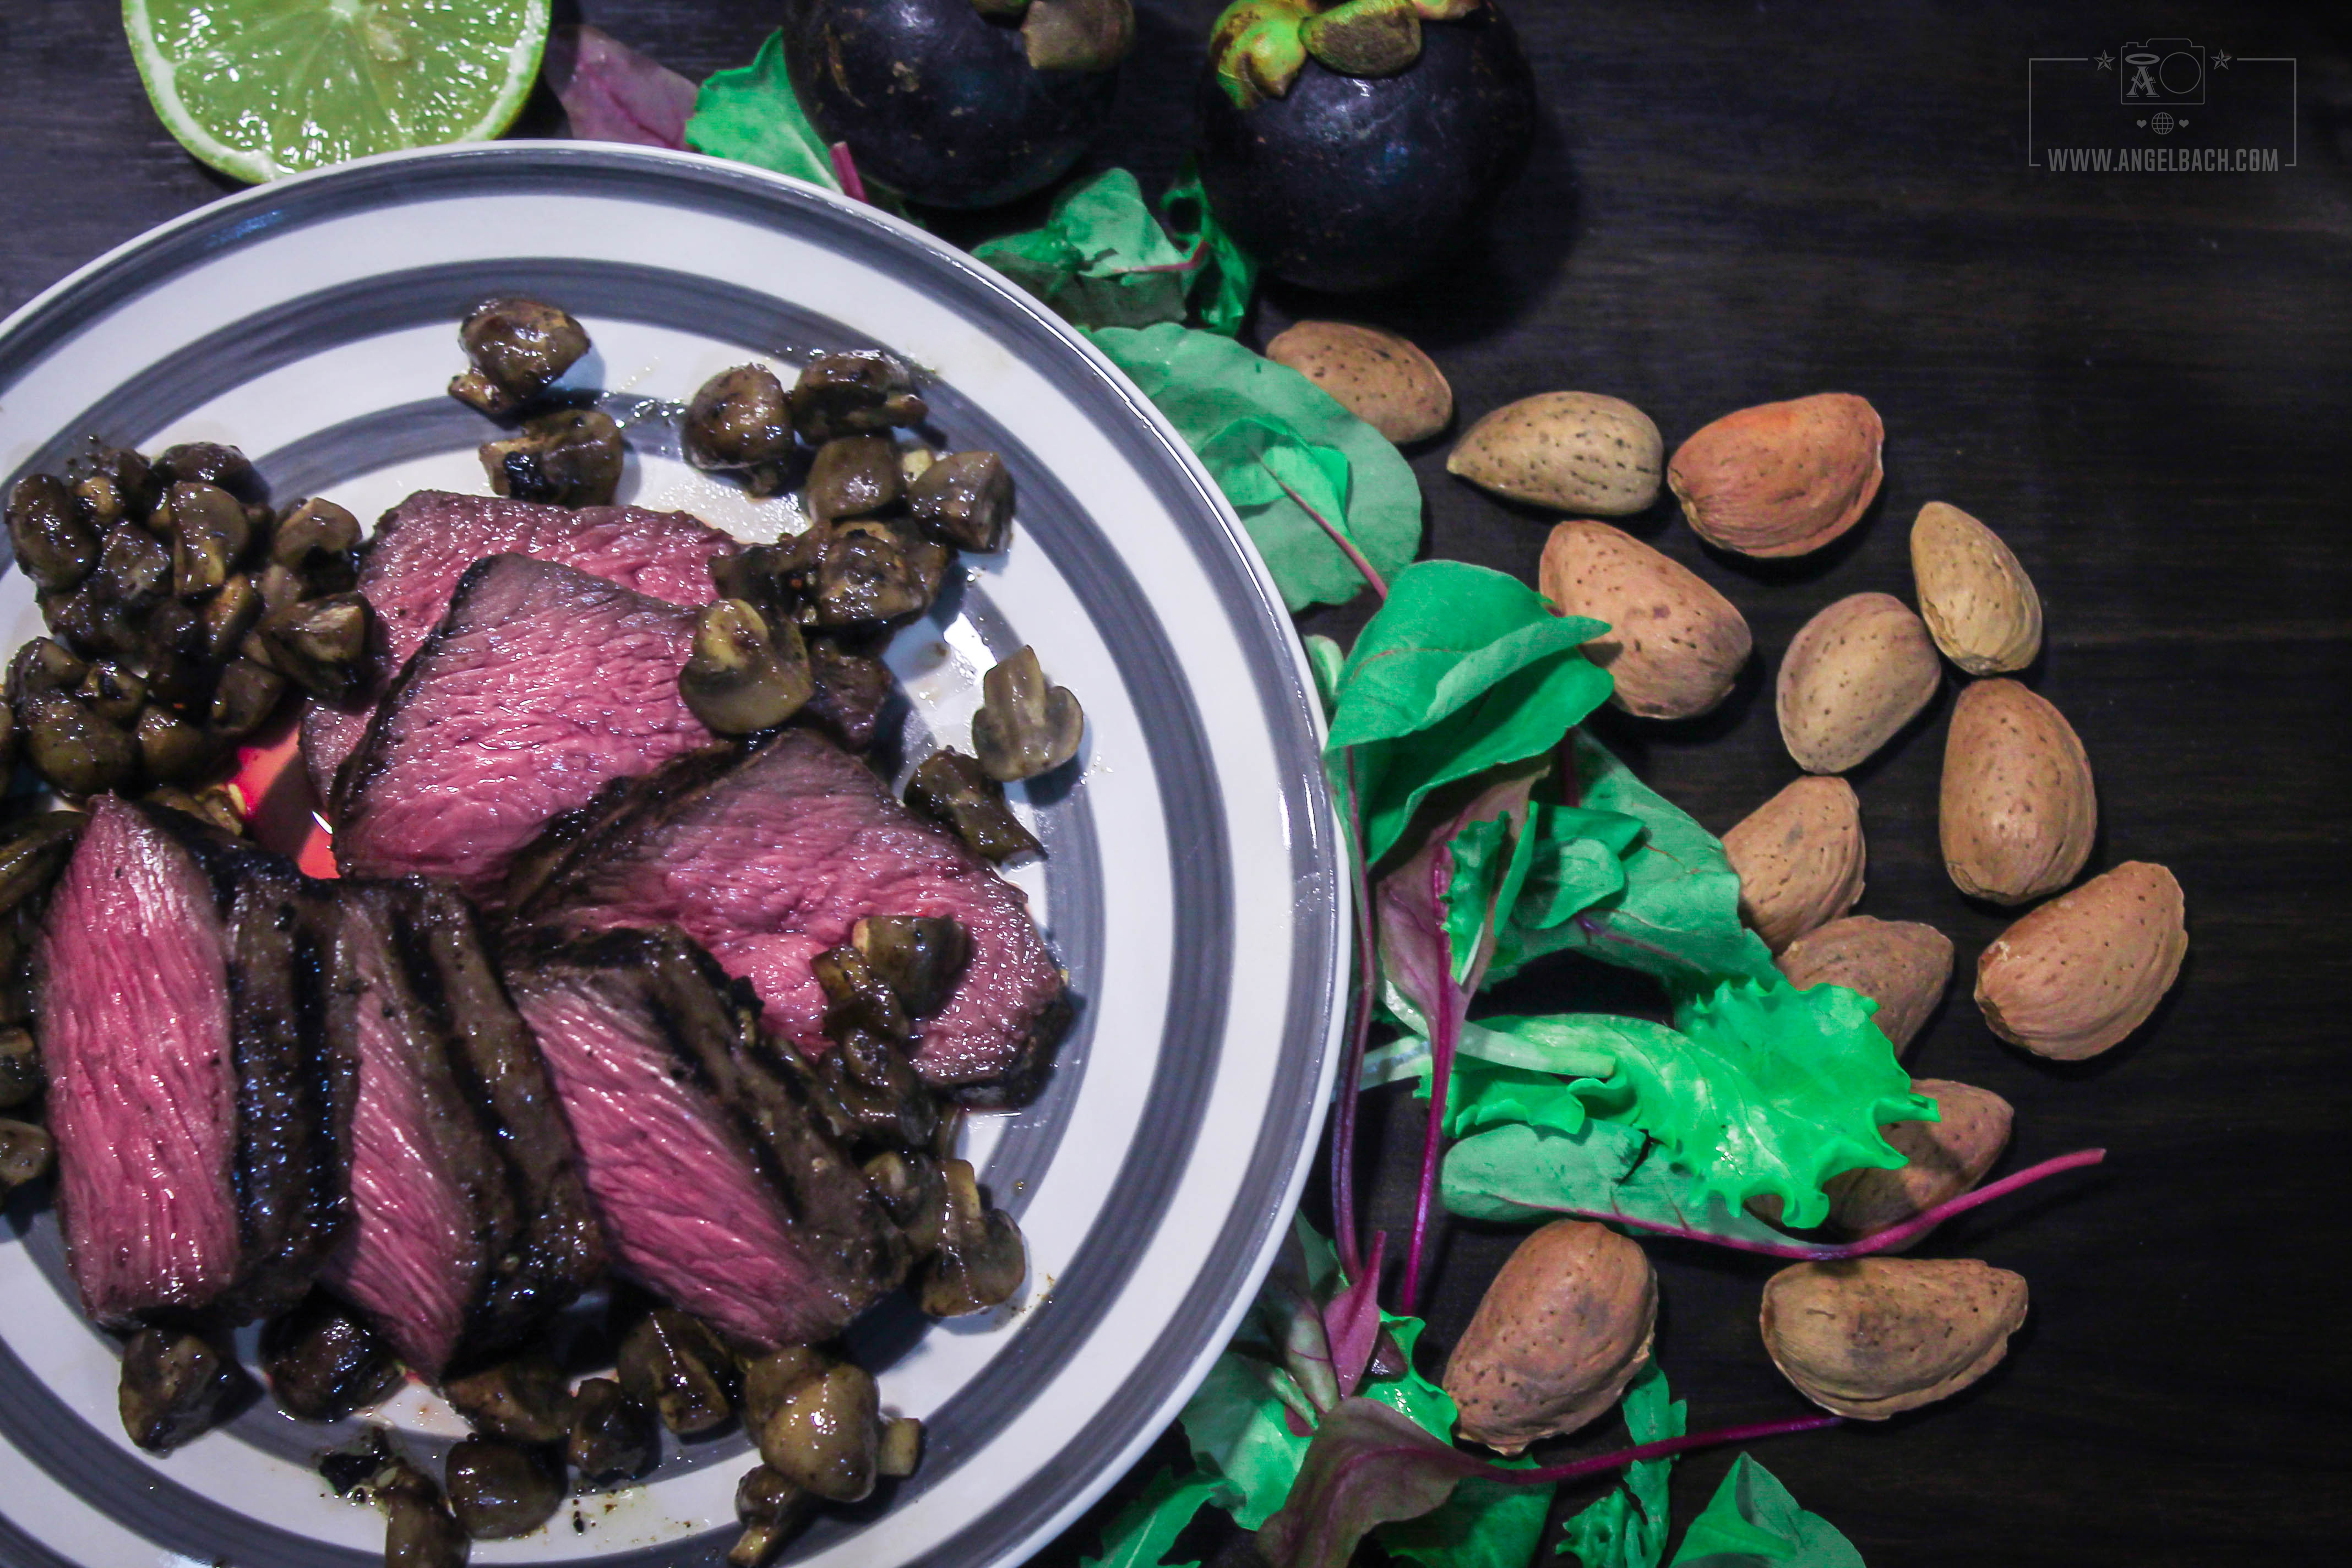 Chef Esben, Steak, Dinner, Salad, Specialty Food, Beef, home cooked, Husband's Kitchen, sous vide cooking, seared steak, slow cook